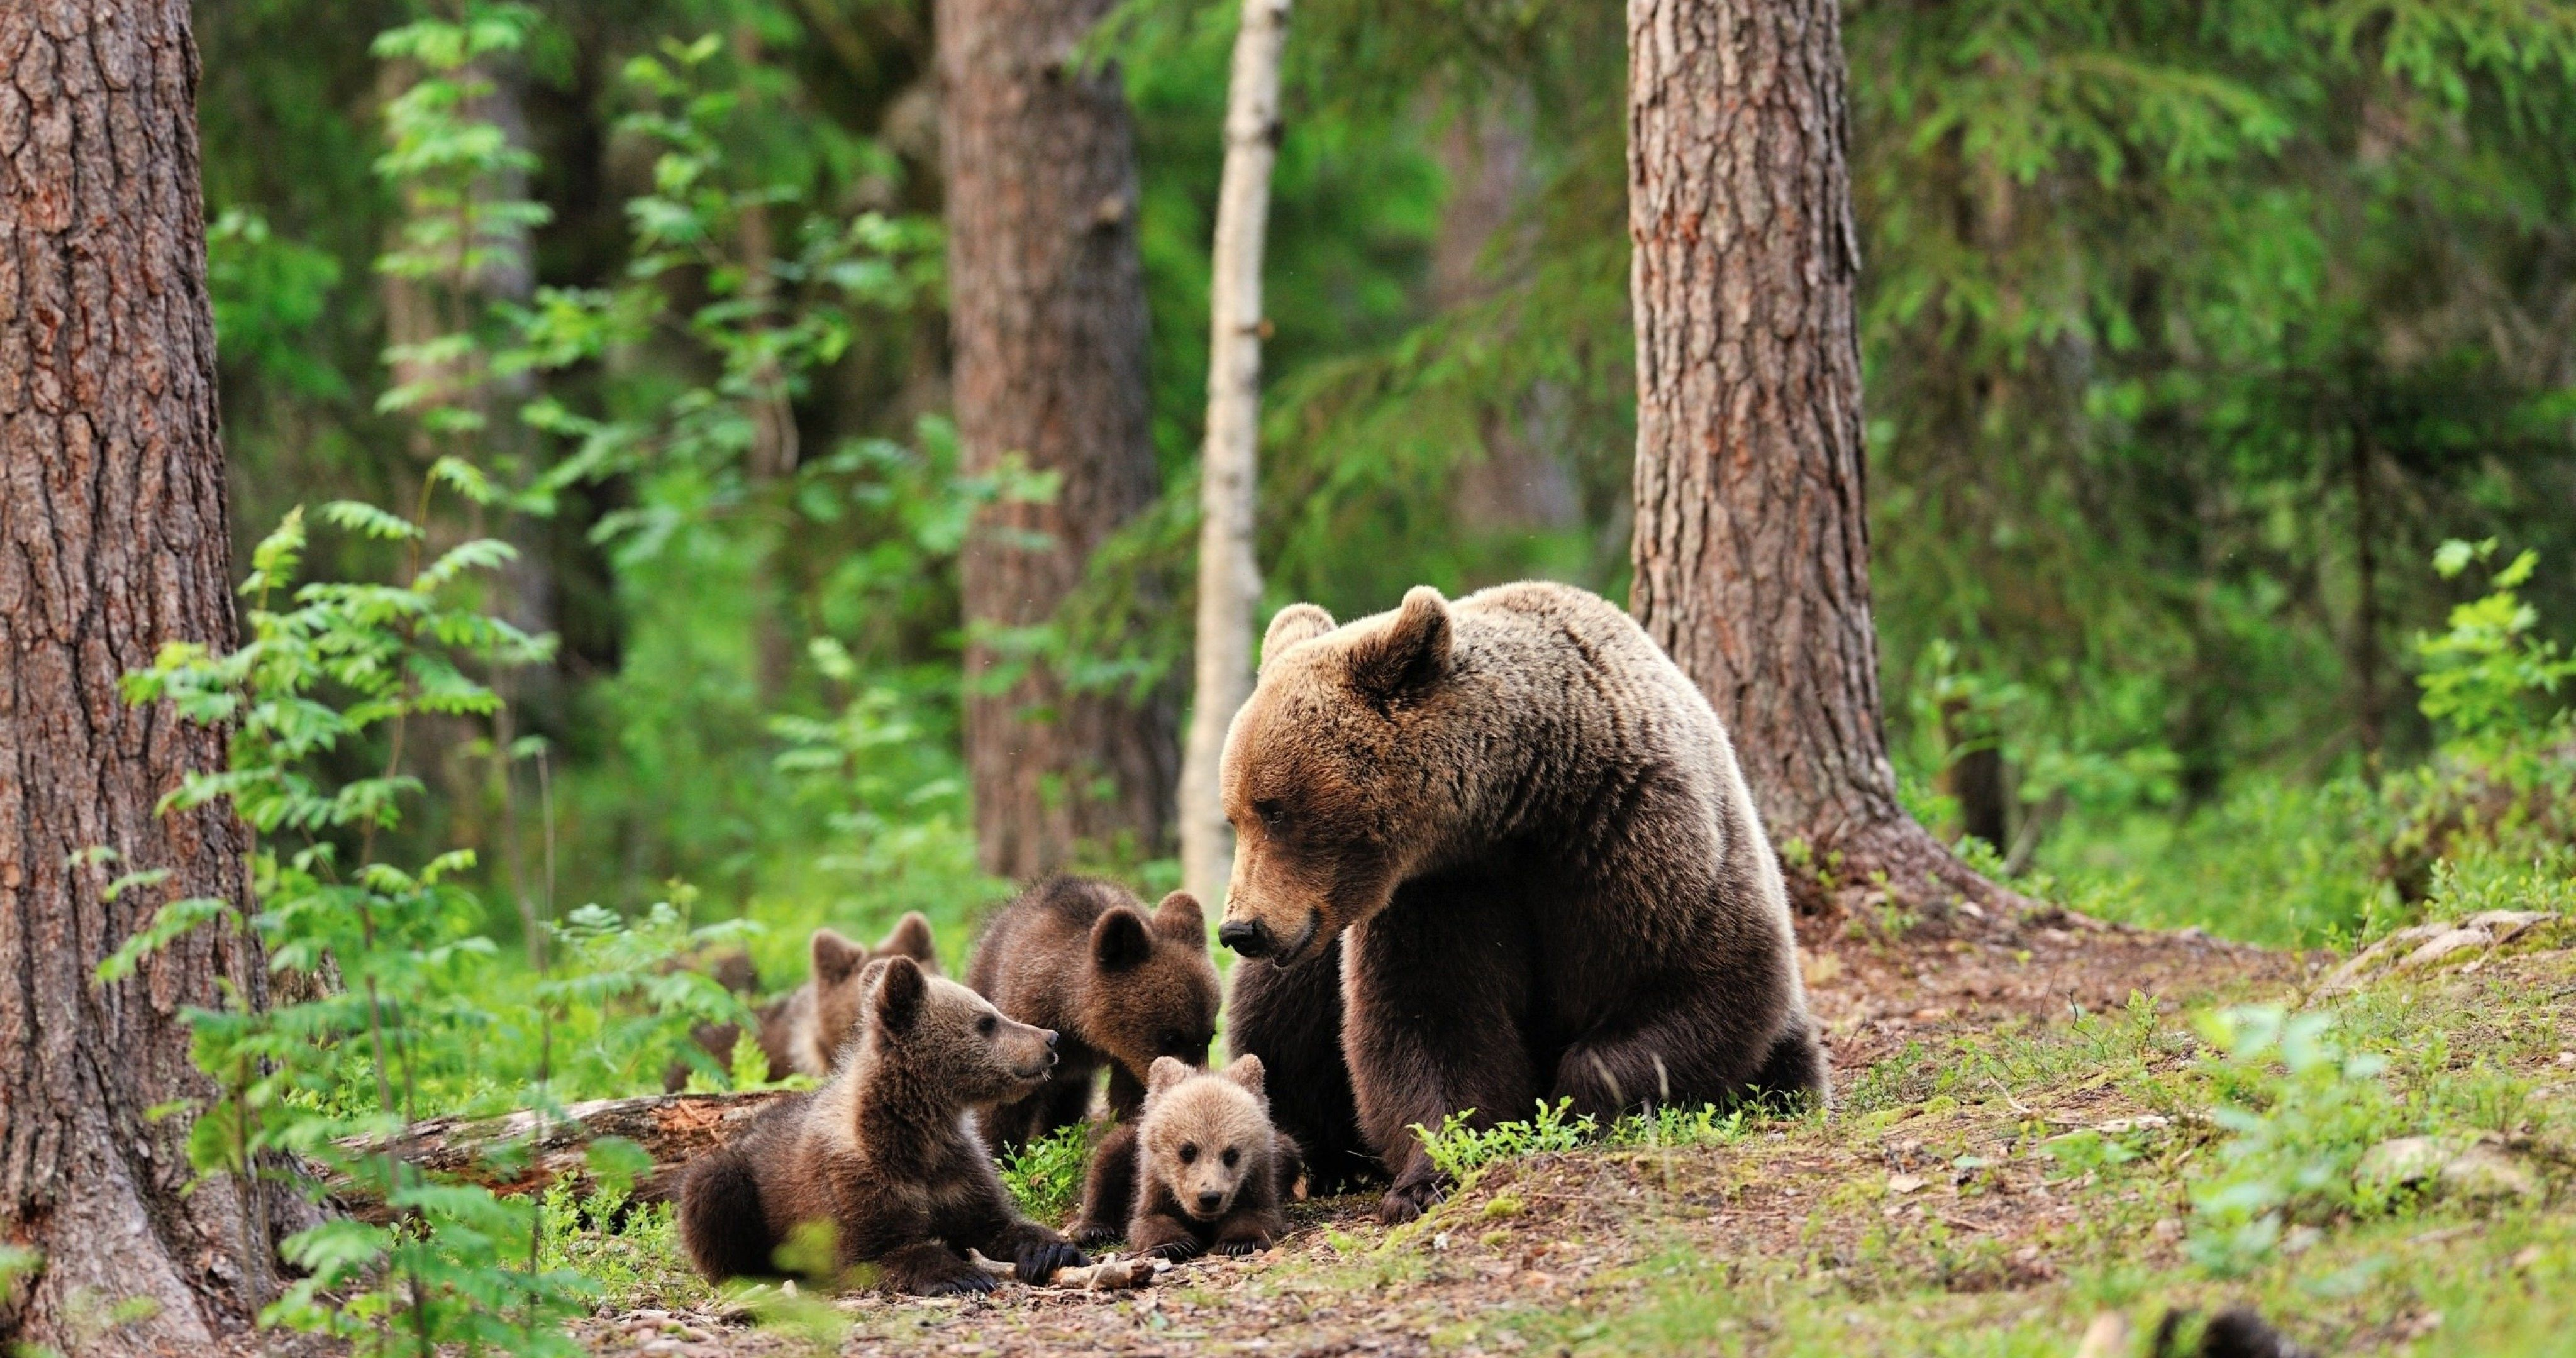 bears family in forest hd wallpaper 4k ultra hd wallpaper